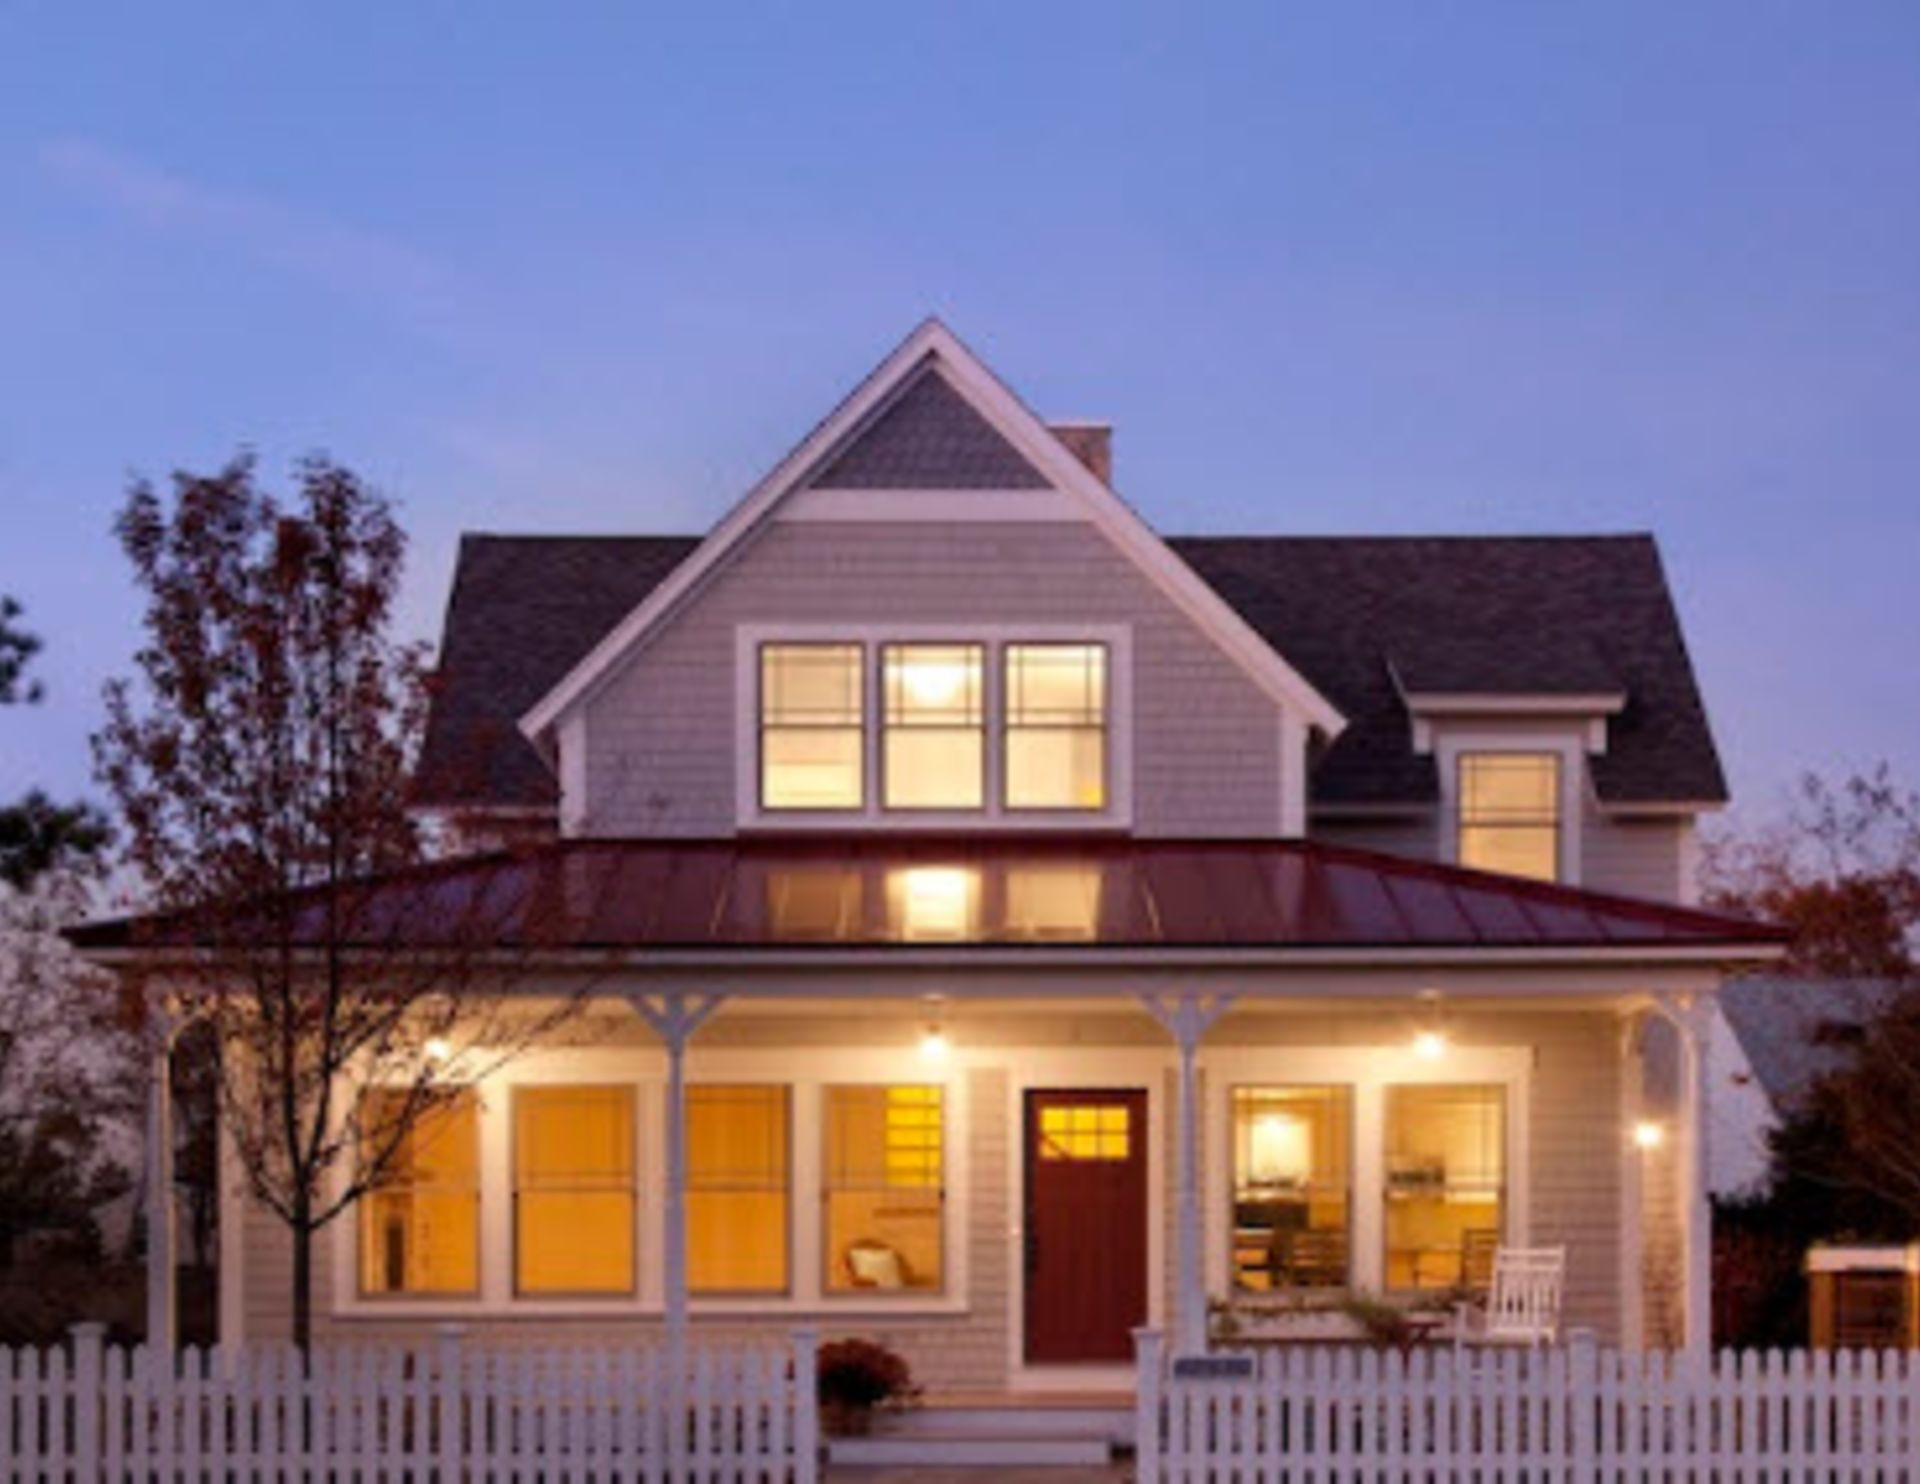 A major concern for home sellers